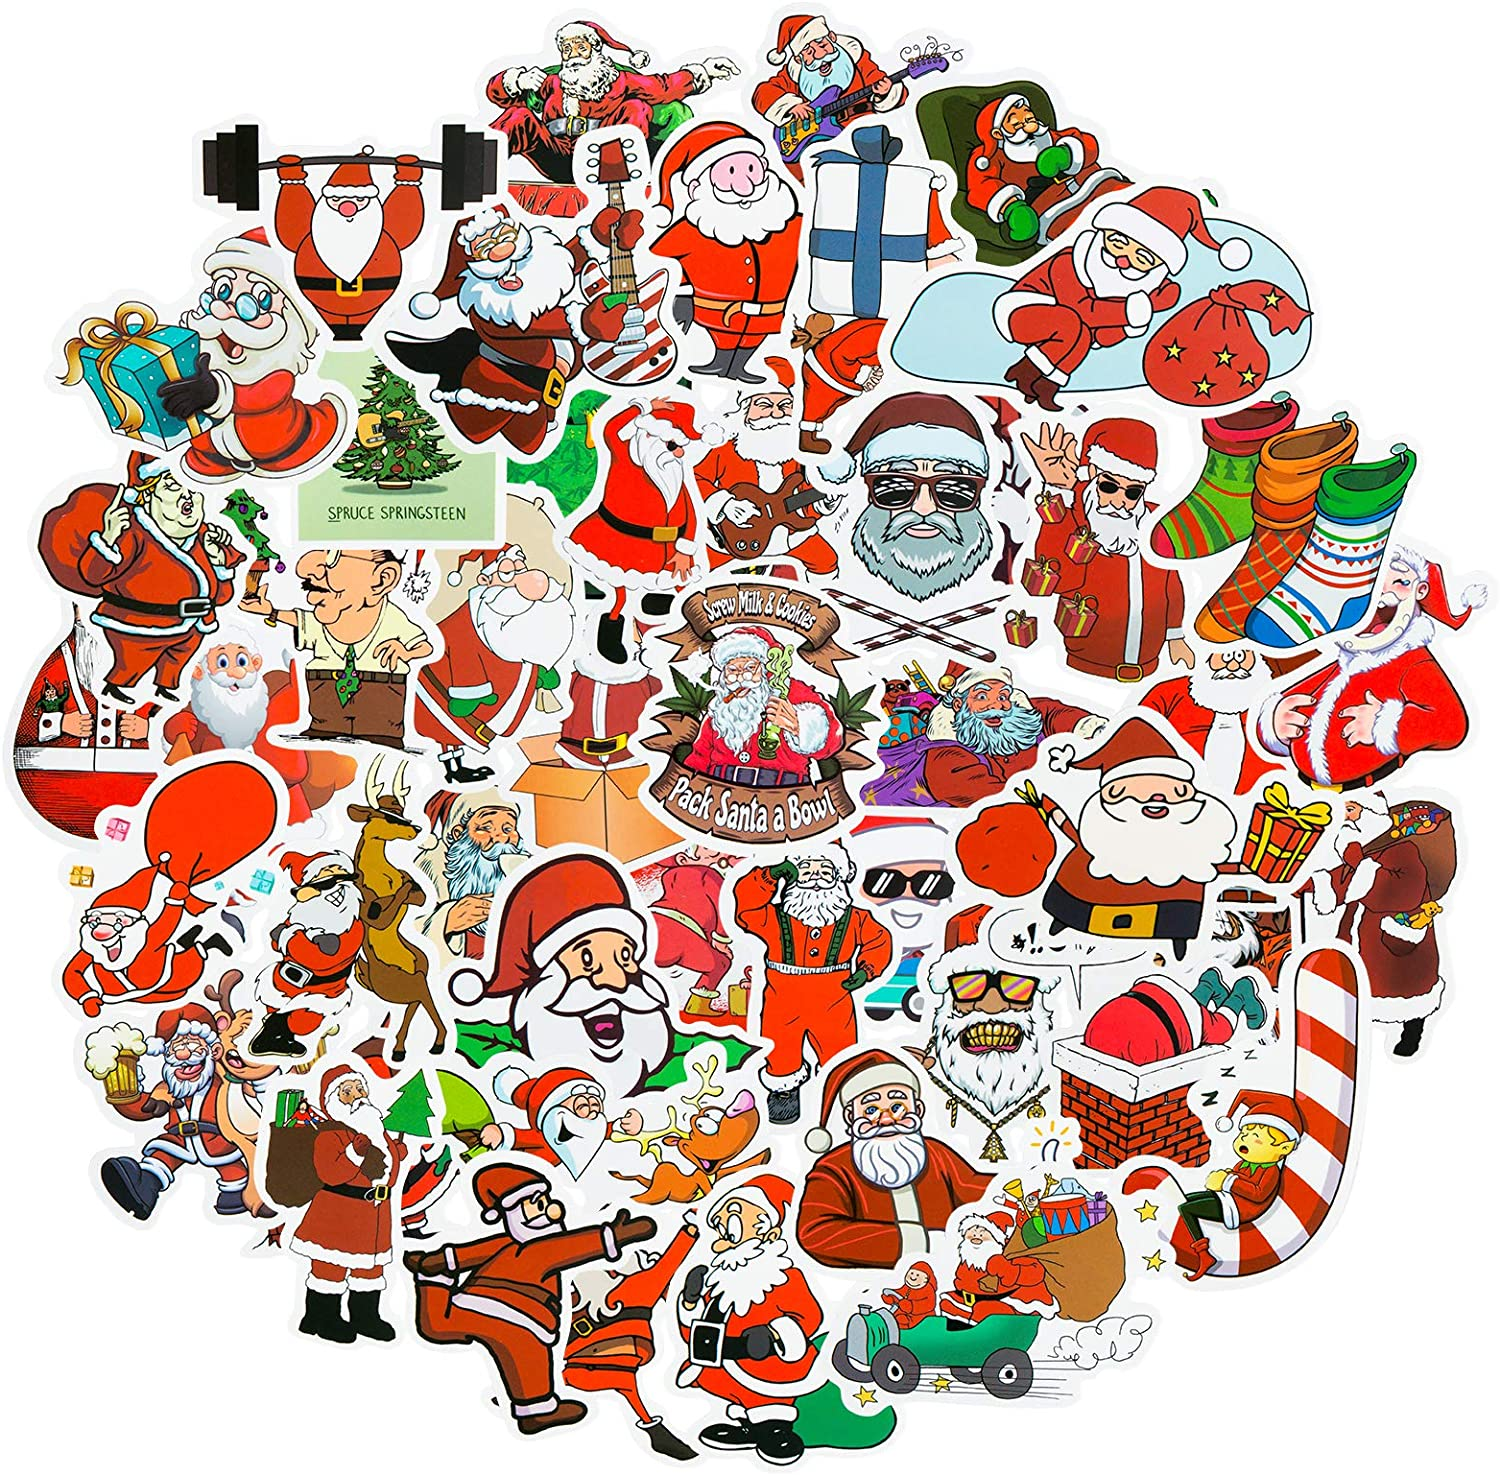 DRAGTIGER Christmas Stickers 50 Pcs with Waterproof Vinyl Stickers for Kids Gift Christmas Decorations Party Supplies.